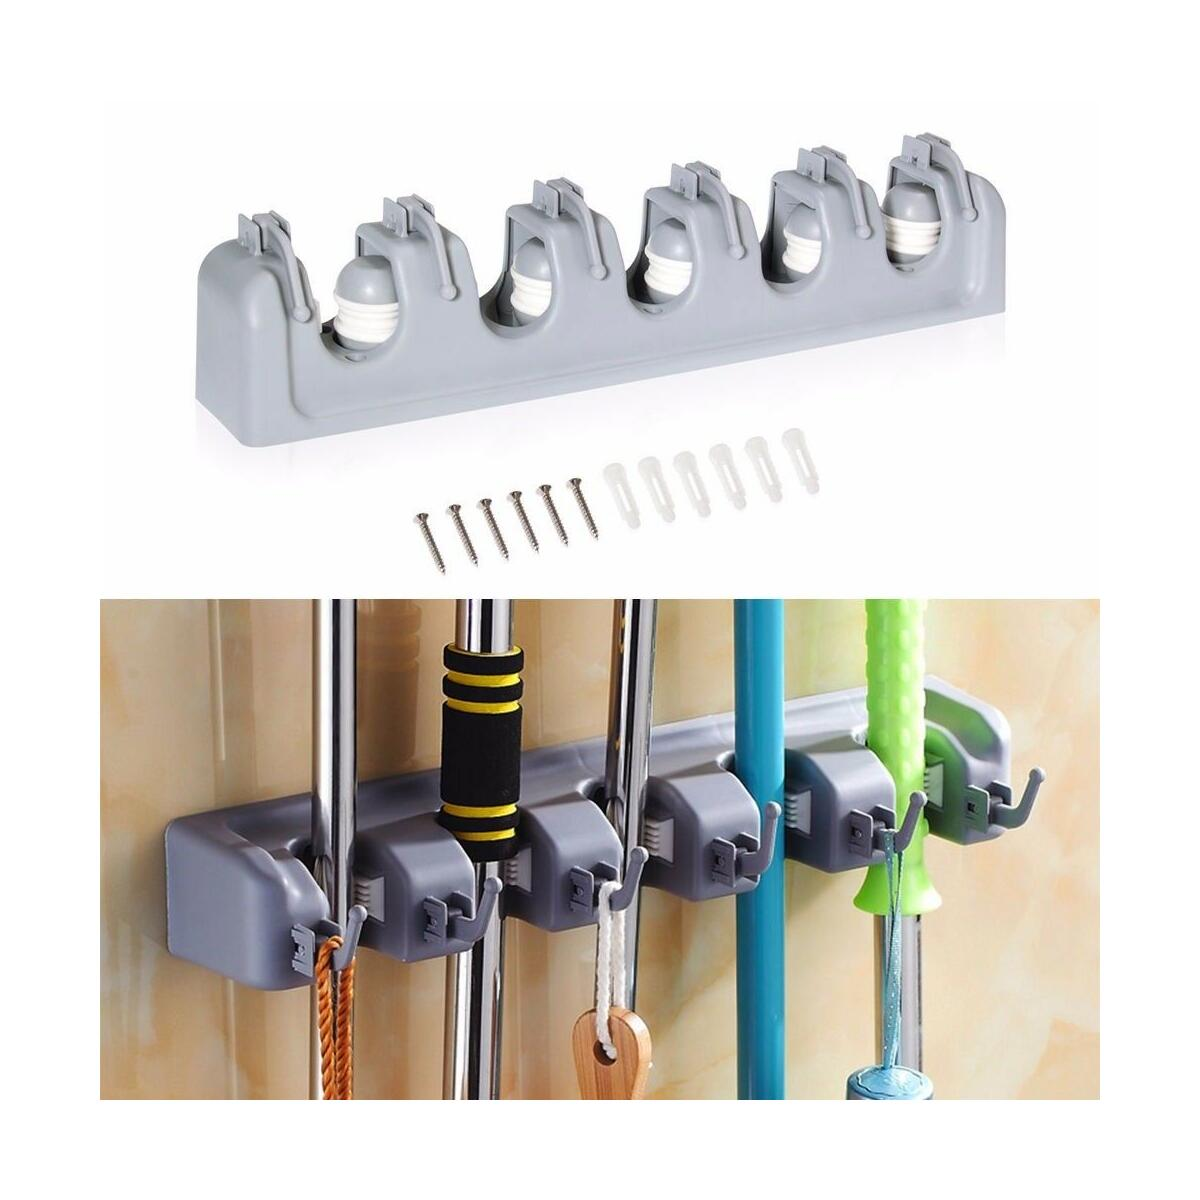 Broom Holder and Garden Tool Garage Organizer 5 Slots 6 Hooks for Rake Mop Wall